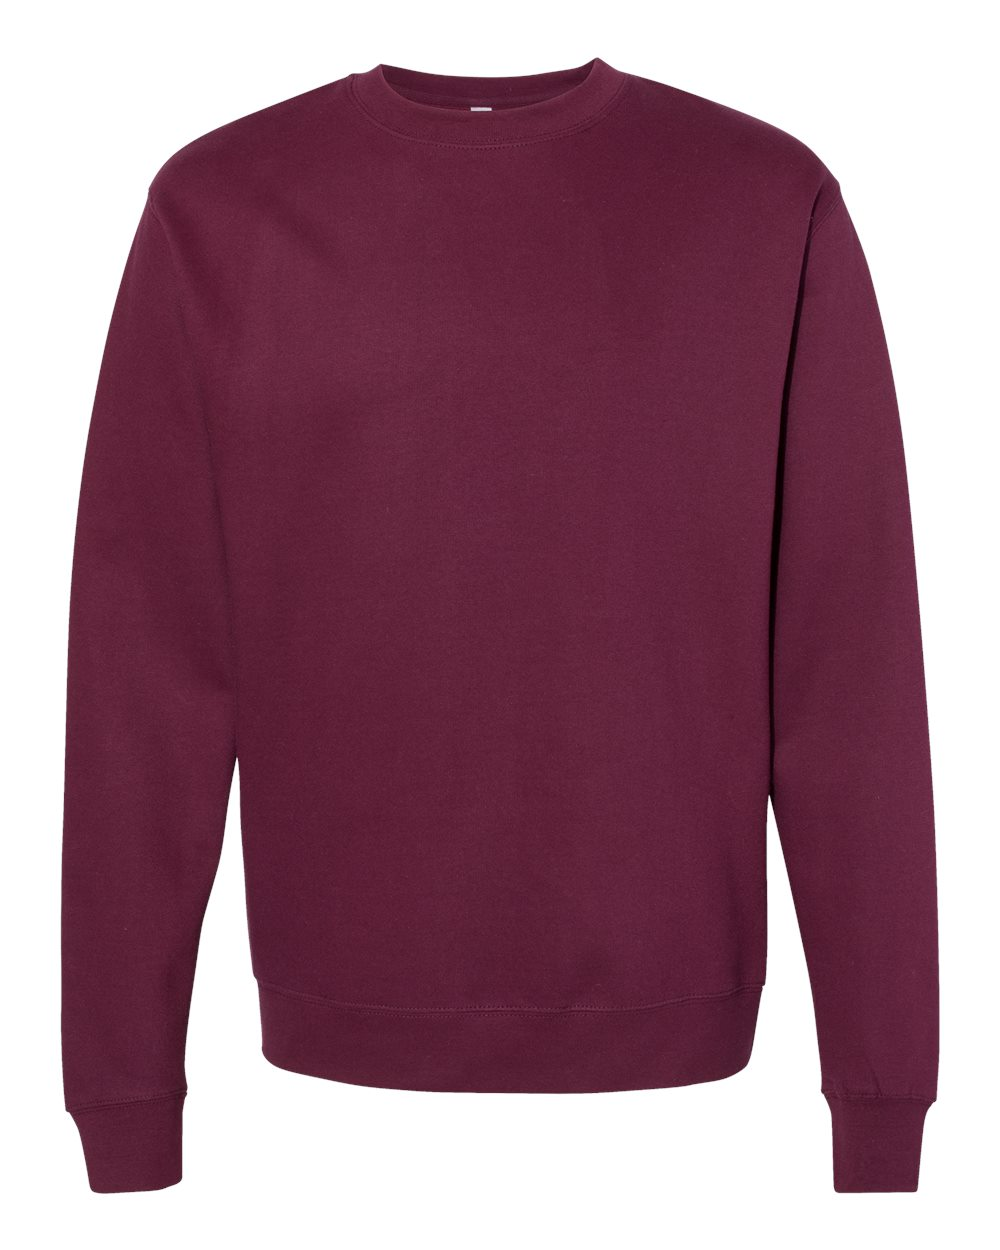 Independent-Trading-Co-Midweight-Crewneck-Sweatshirt-SS3000-up-to-3XL miniature 30